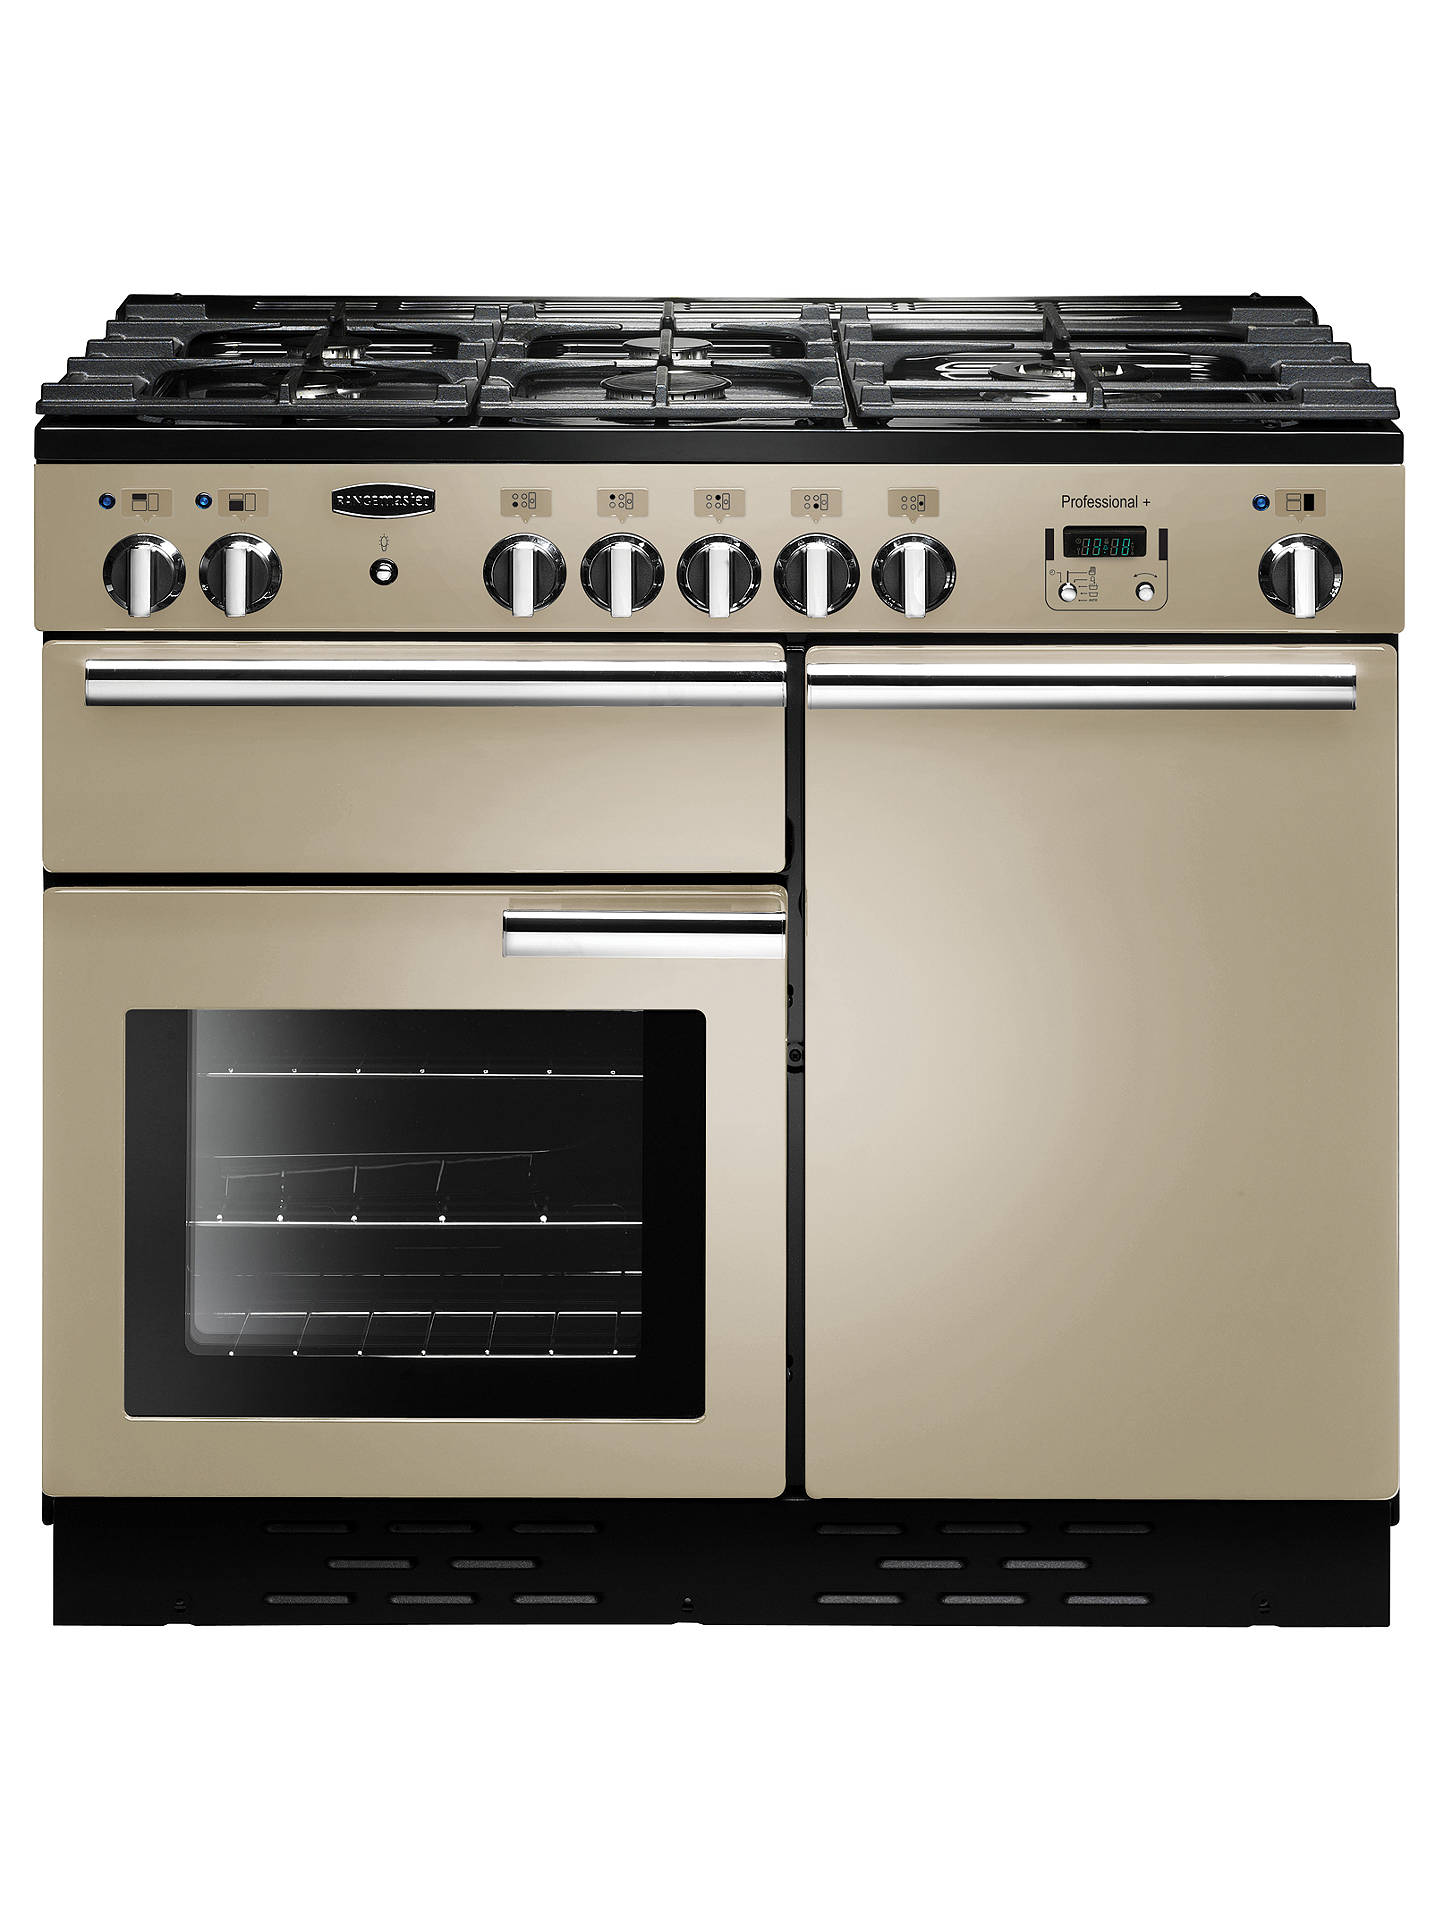 Buy Rangemaster Professional + 100 Dual Fuel Range Cooker, Cream/Chrome Trim Online at johnlewis.com